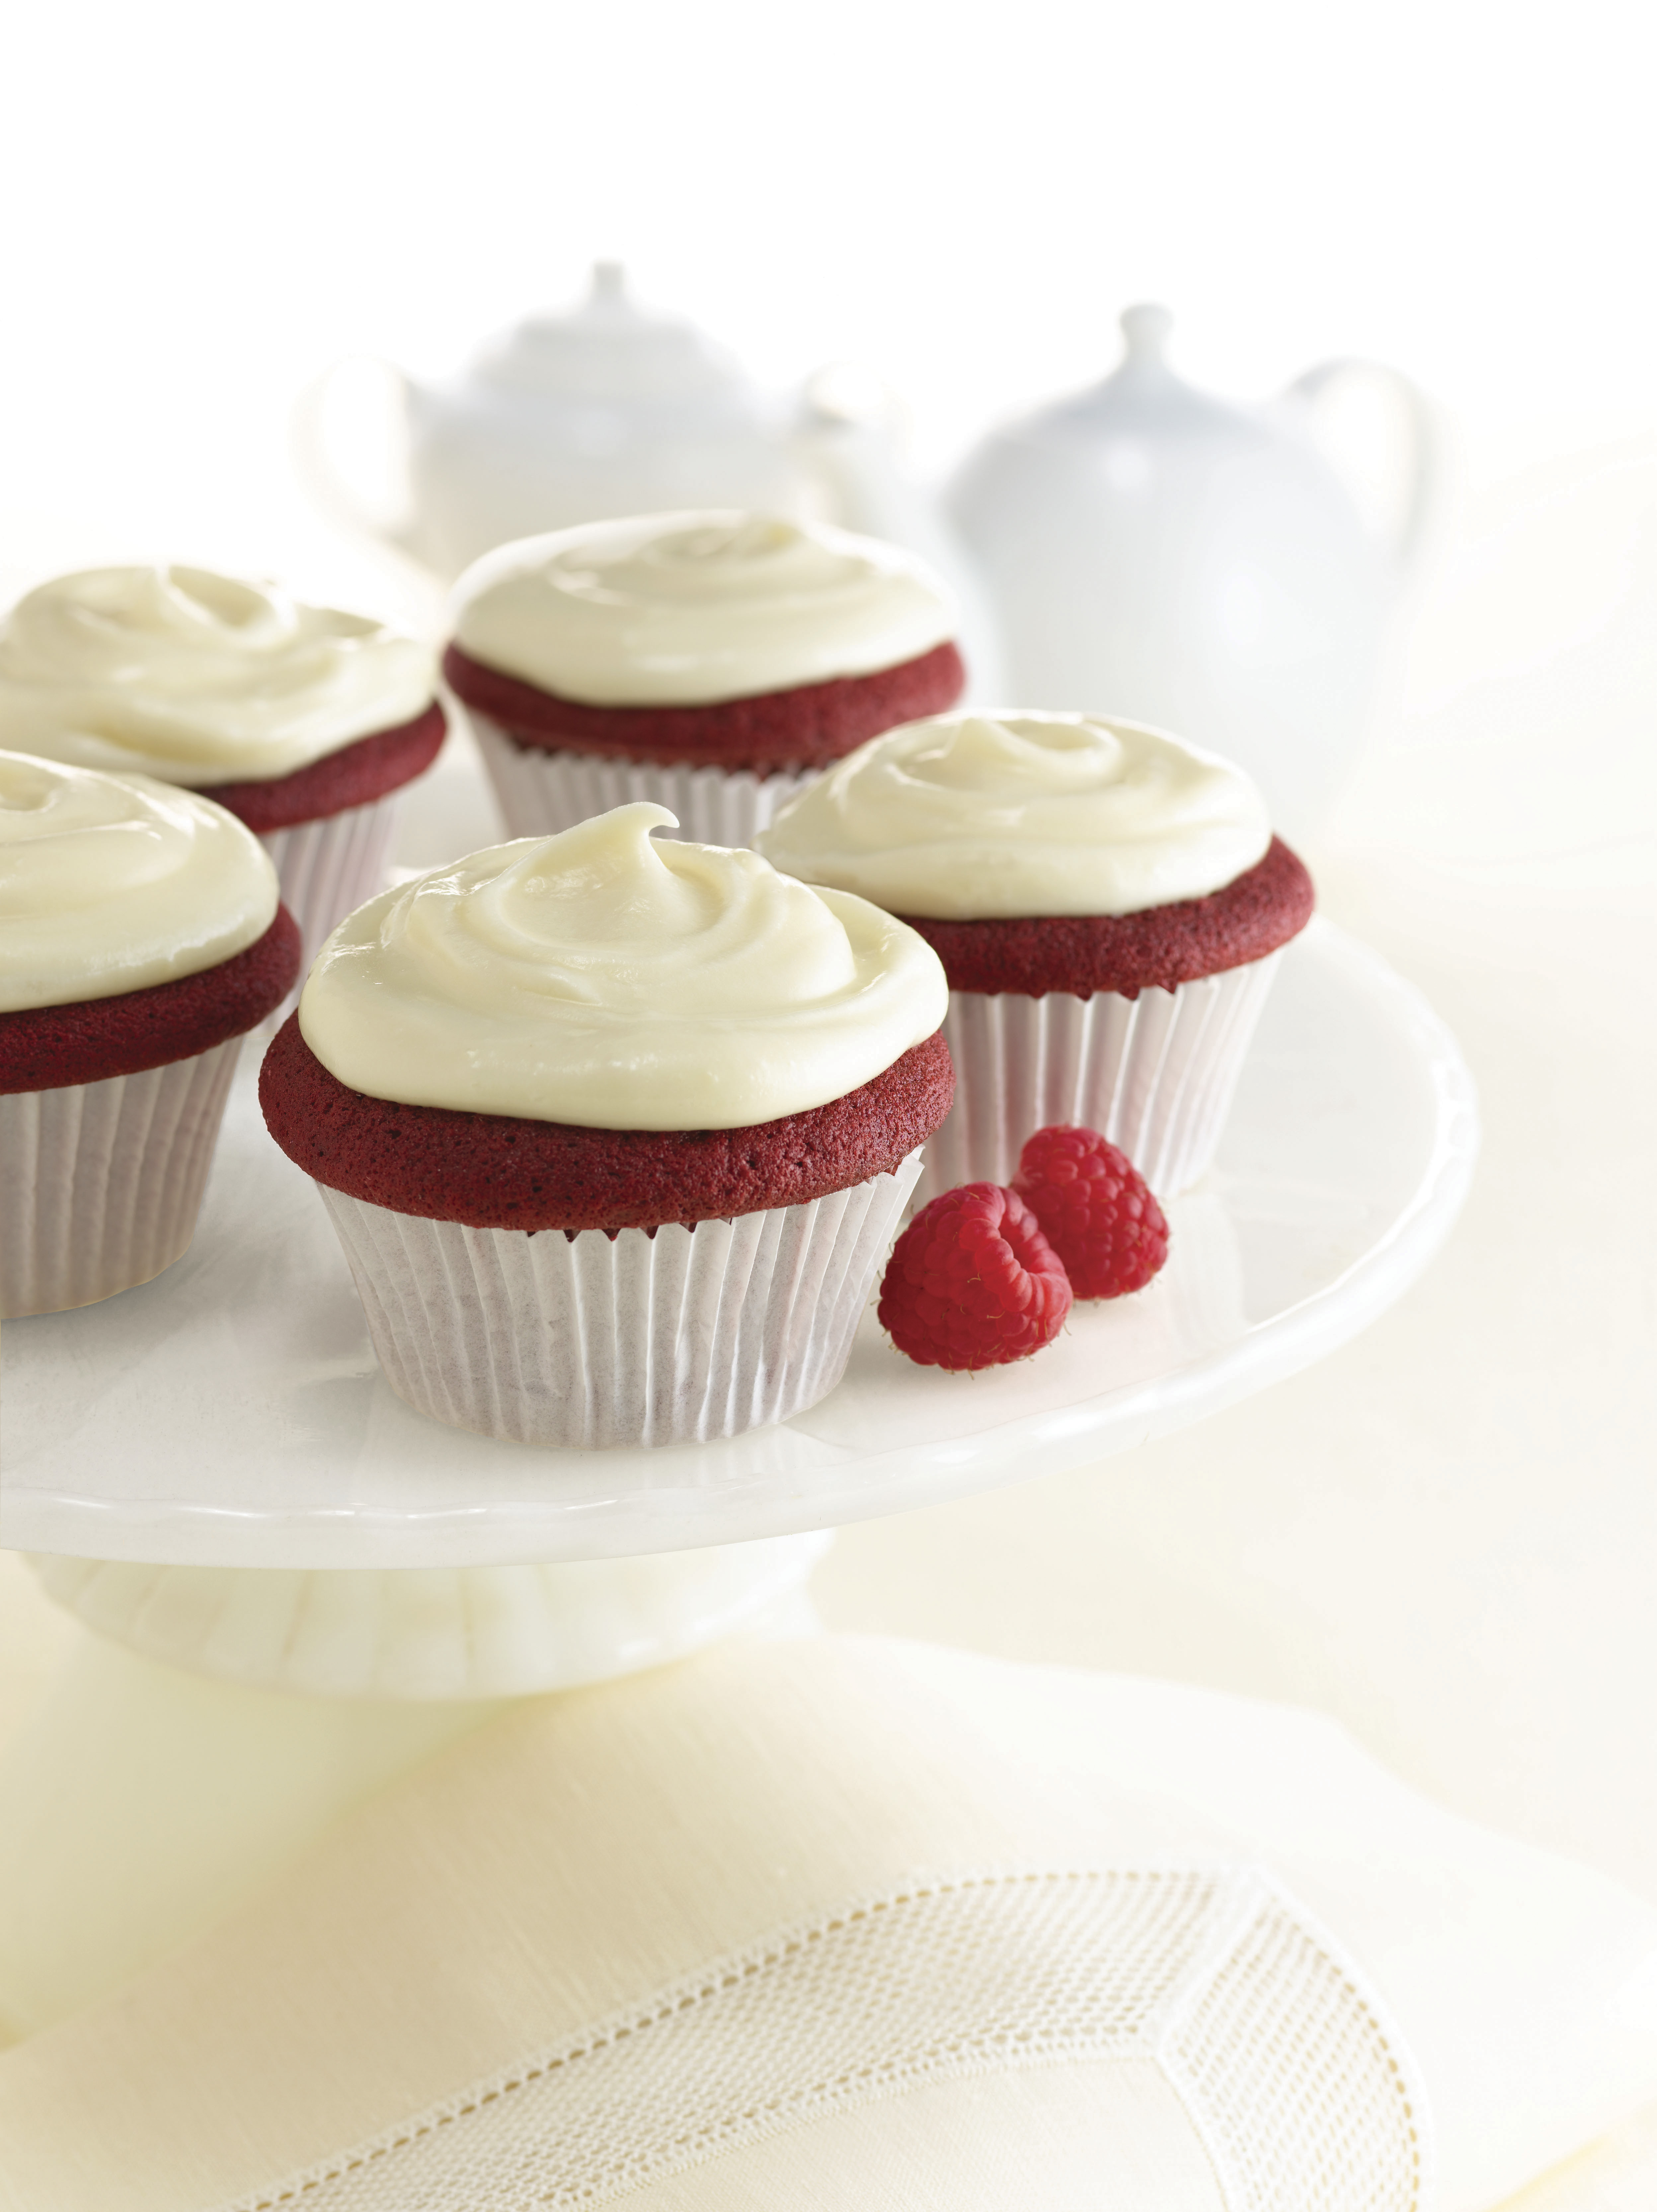 Make this Valentine's Day the most delicious ever, with a recipe perfect for anyone close to your heart: Red Velvet Cupcakes, a mini version of the classic red velvet cake.